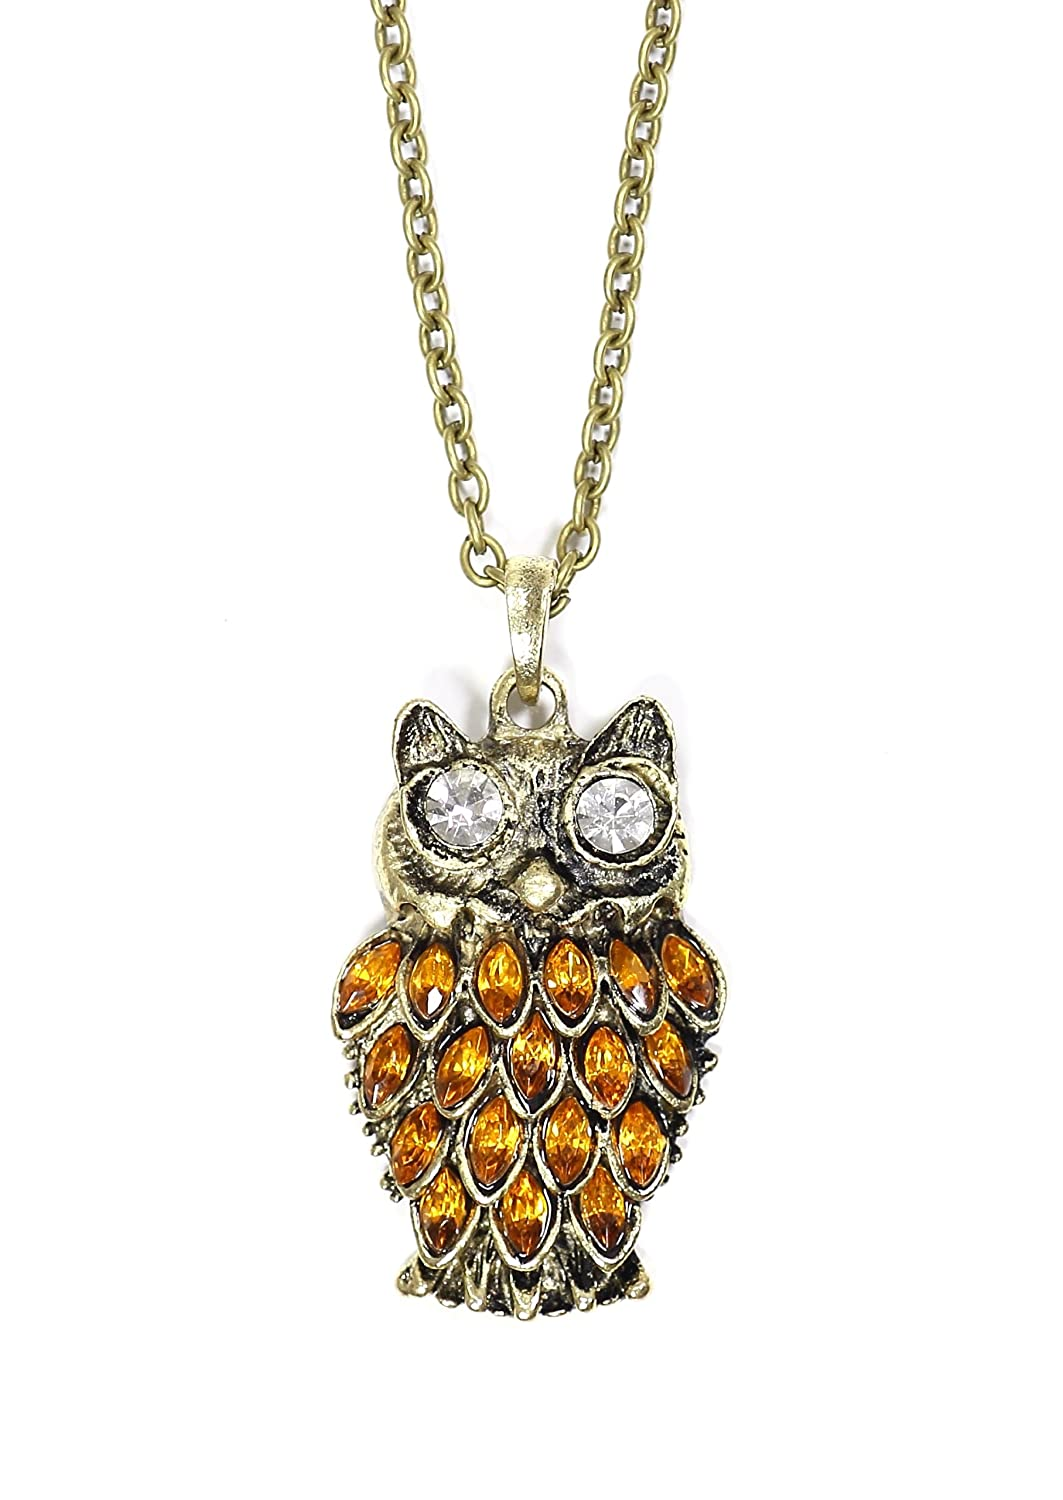 Magic Metal Amber Crystal Owl Necklace Vintage Retro NF12 Gold Charm Antique Pendant Fashion Jewelry